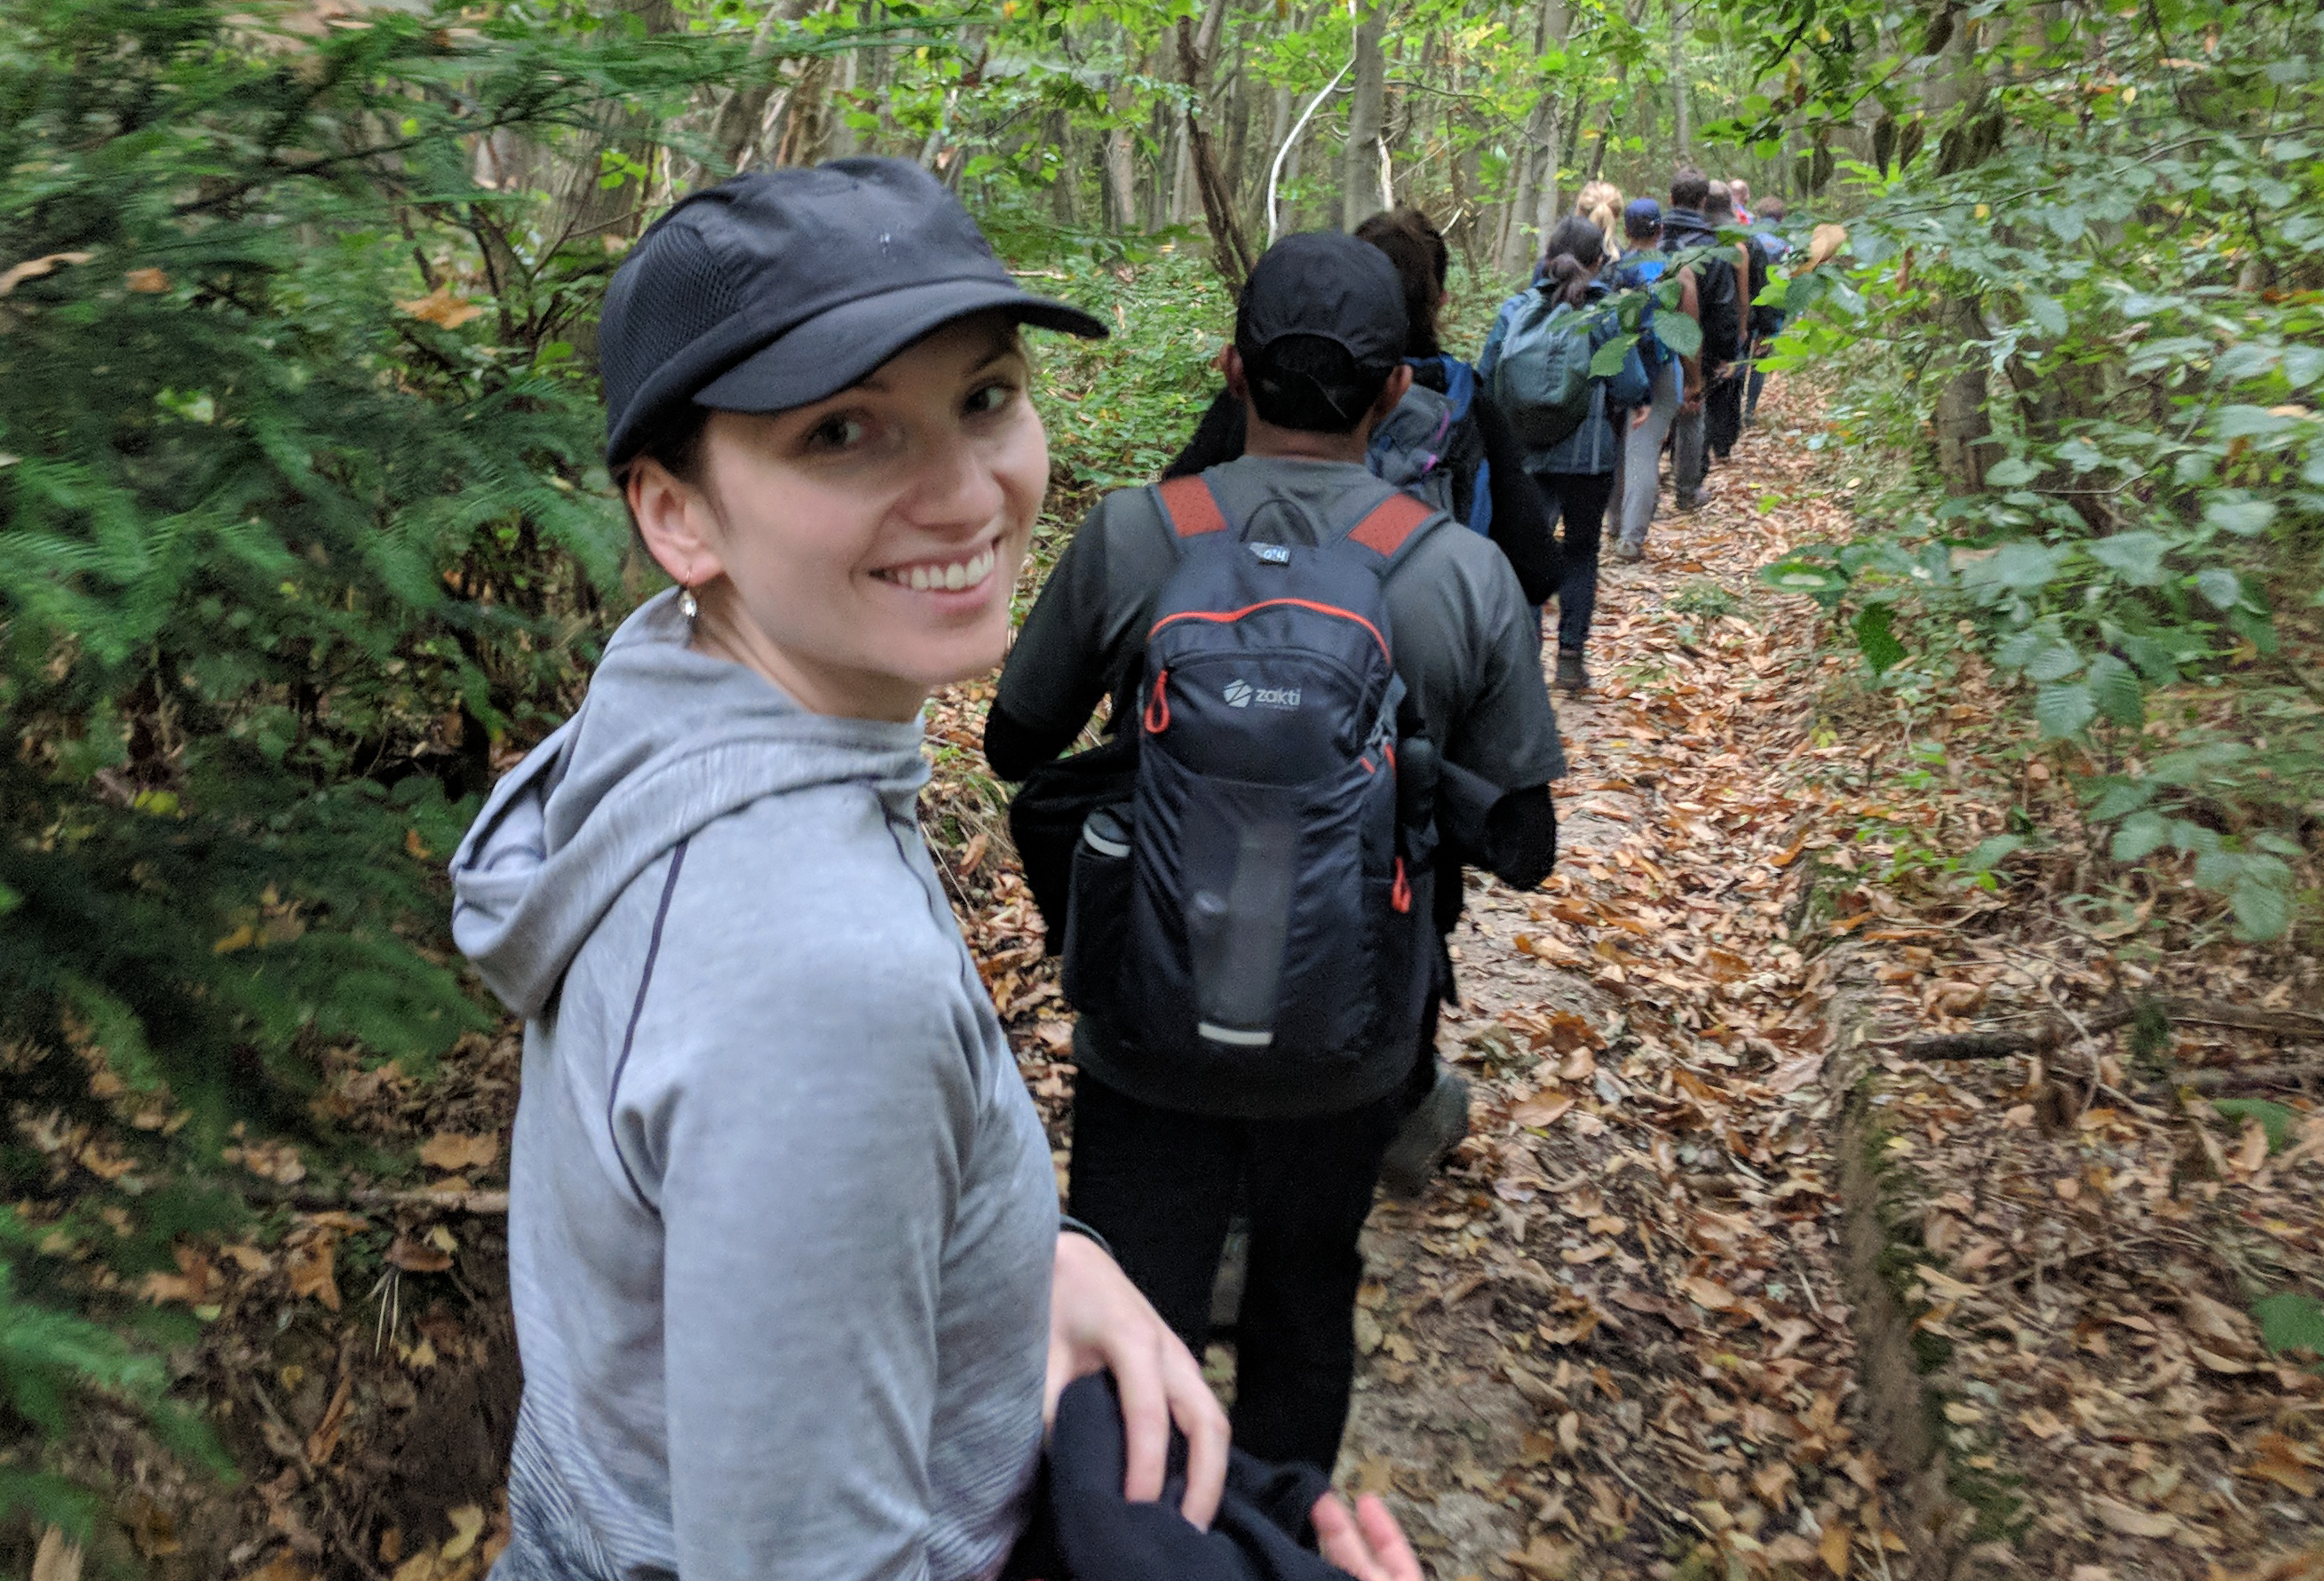 Auth0 employee Aoife Crowley hiking